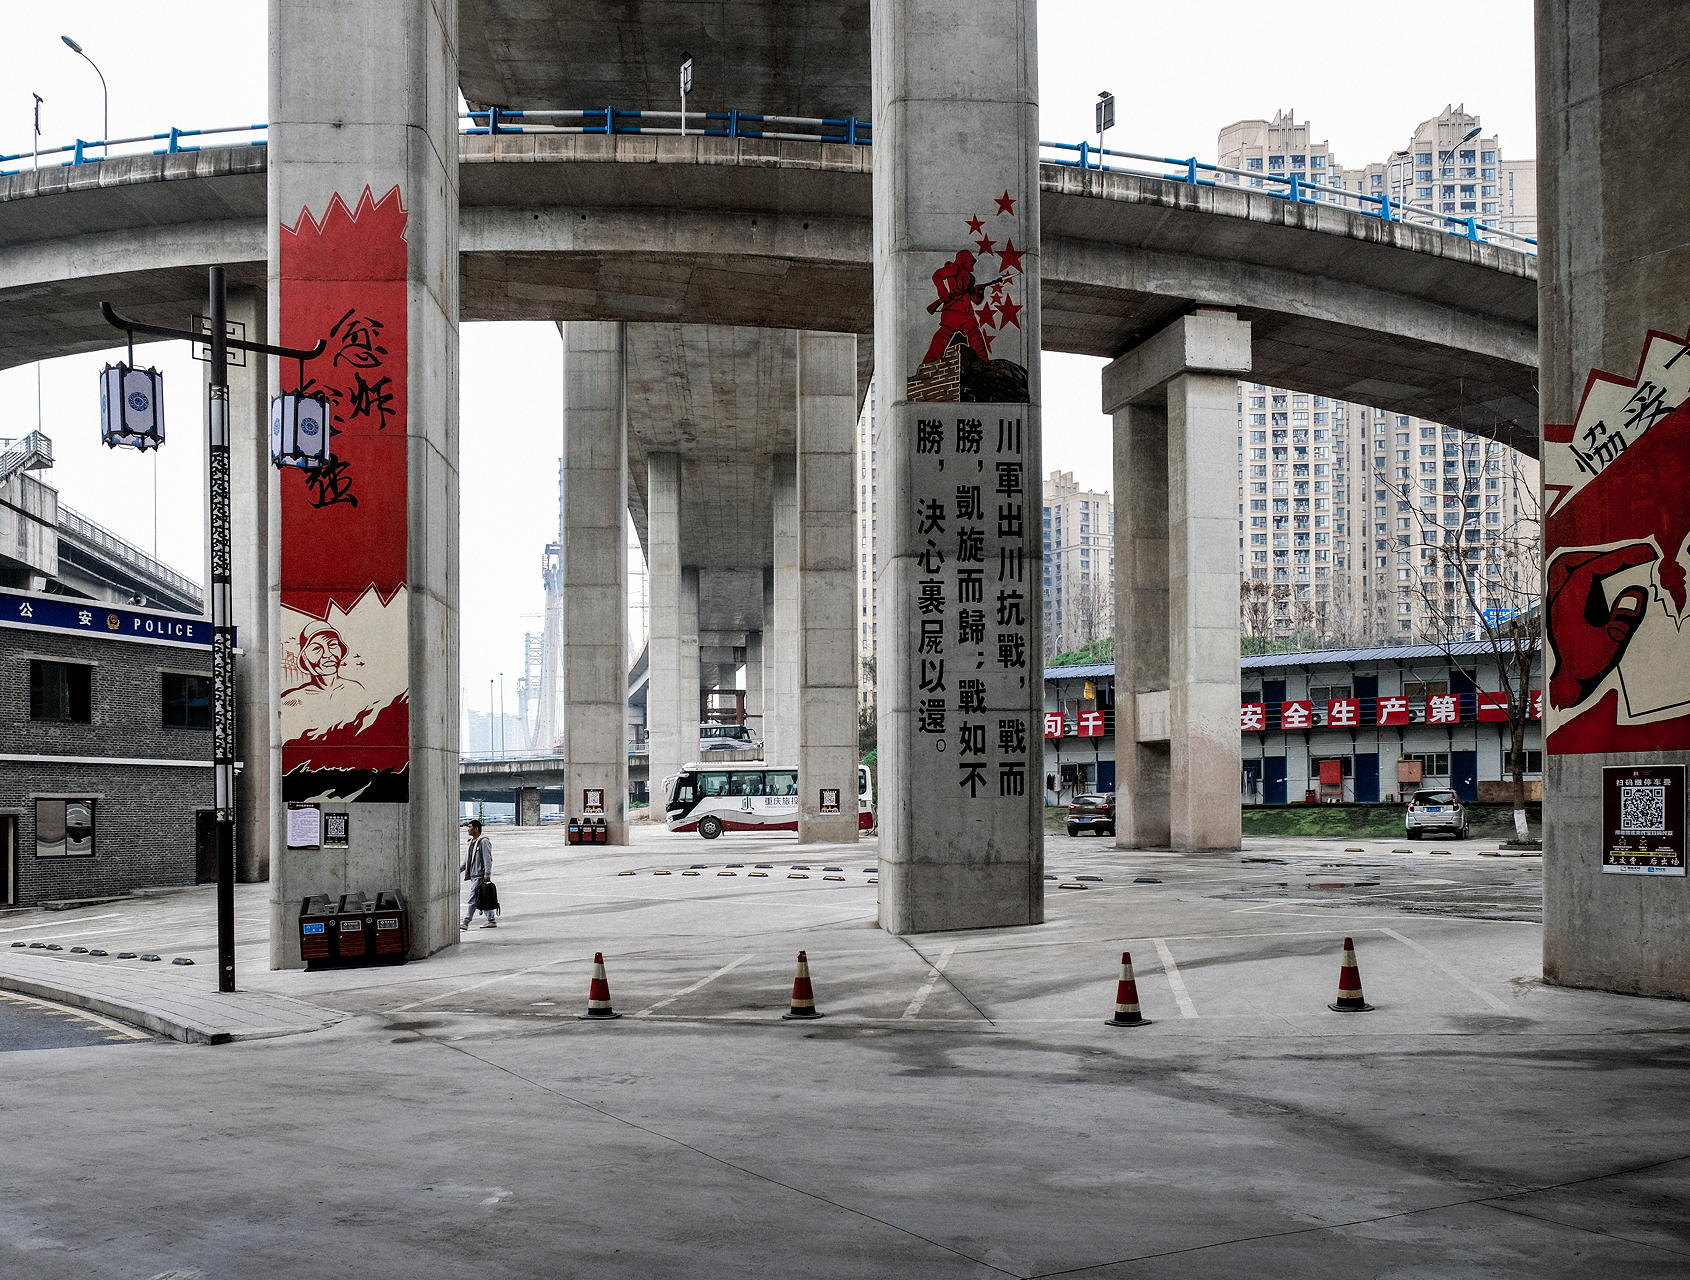 Fabian Muir - Megalopolis, or the Subversion of China's Landscapes - Felix Schoeller Photoaward